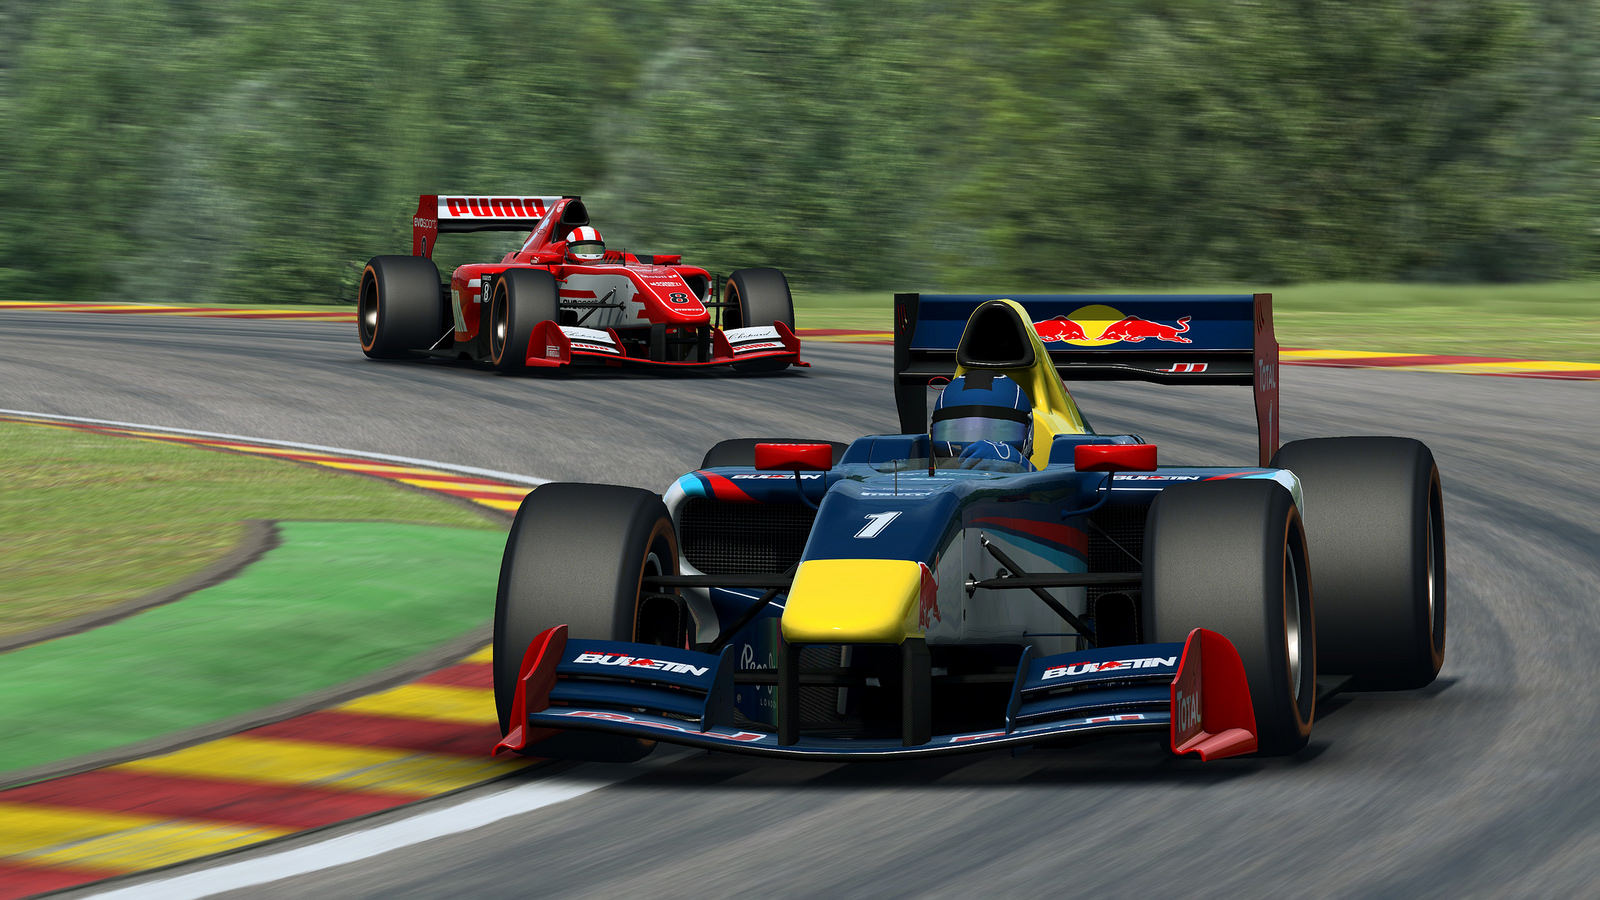 r3e formula raceroom 2 now available virtualr net raceroom experience raceroom racing